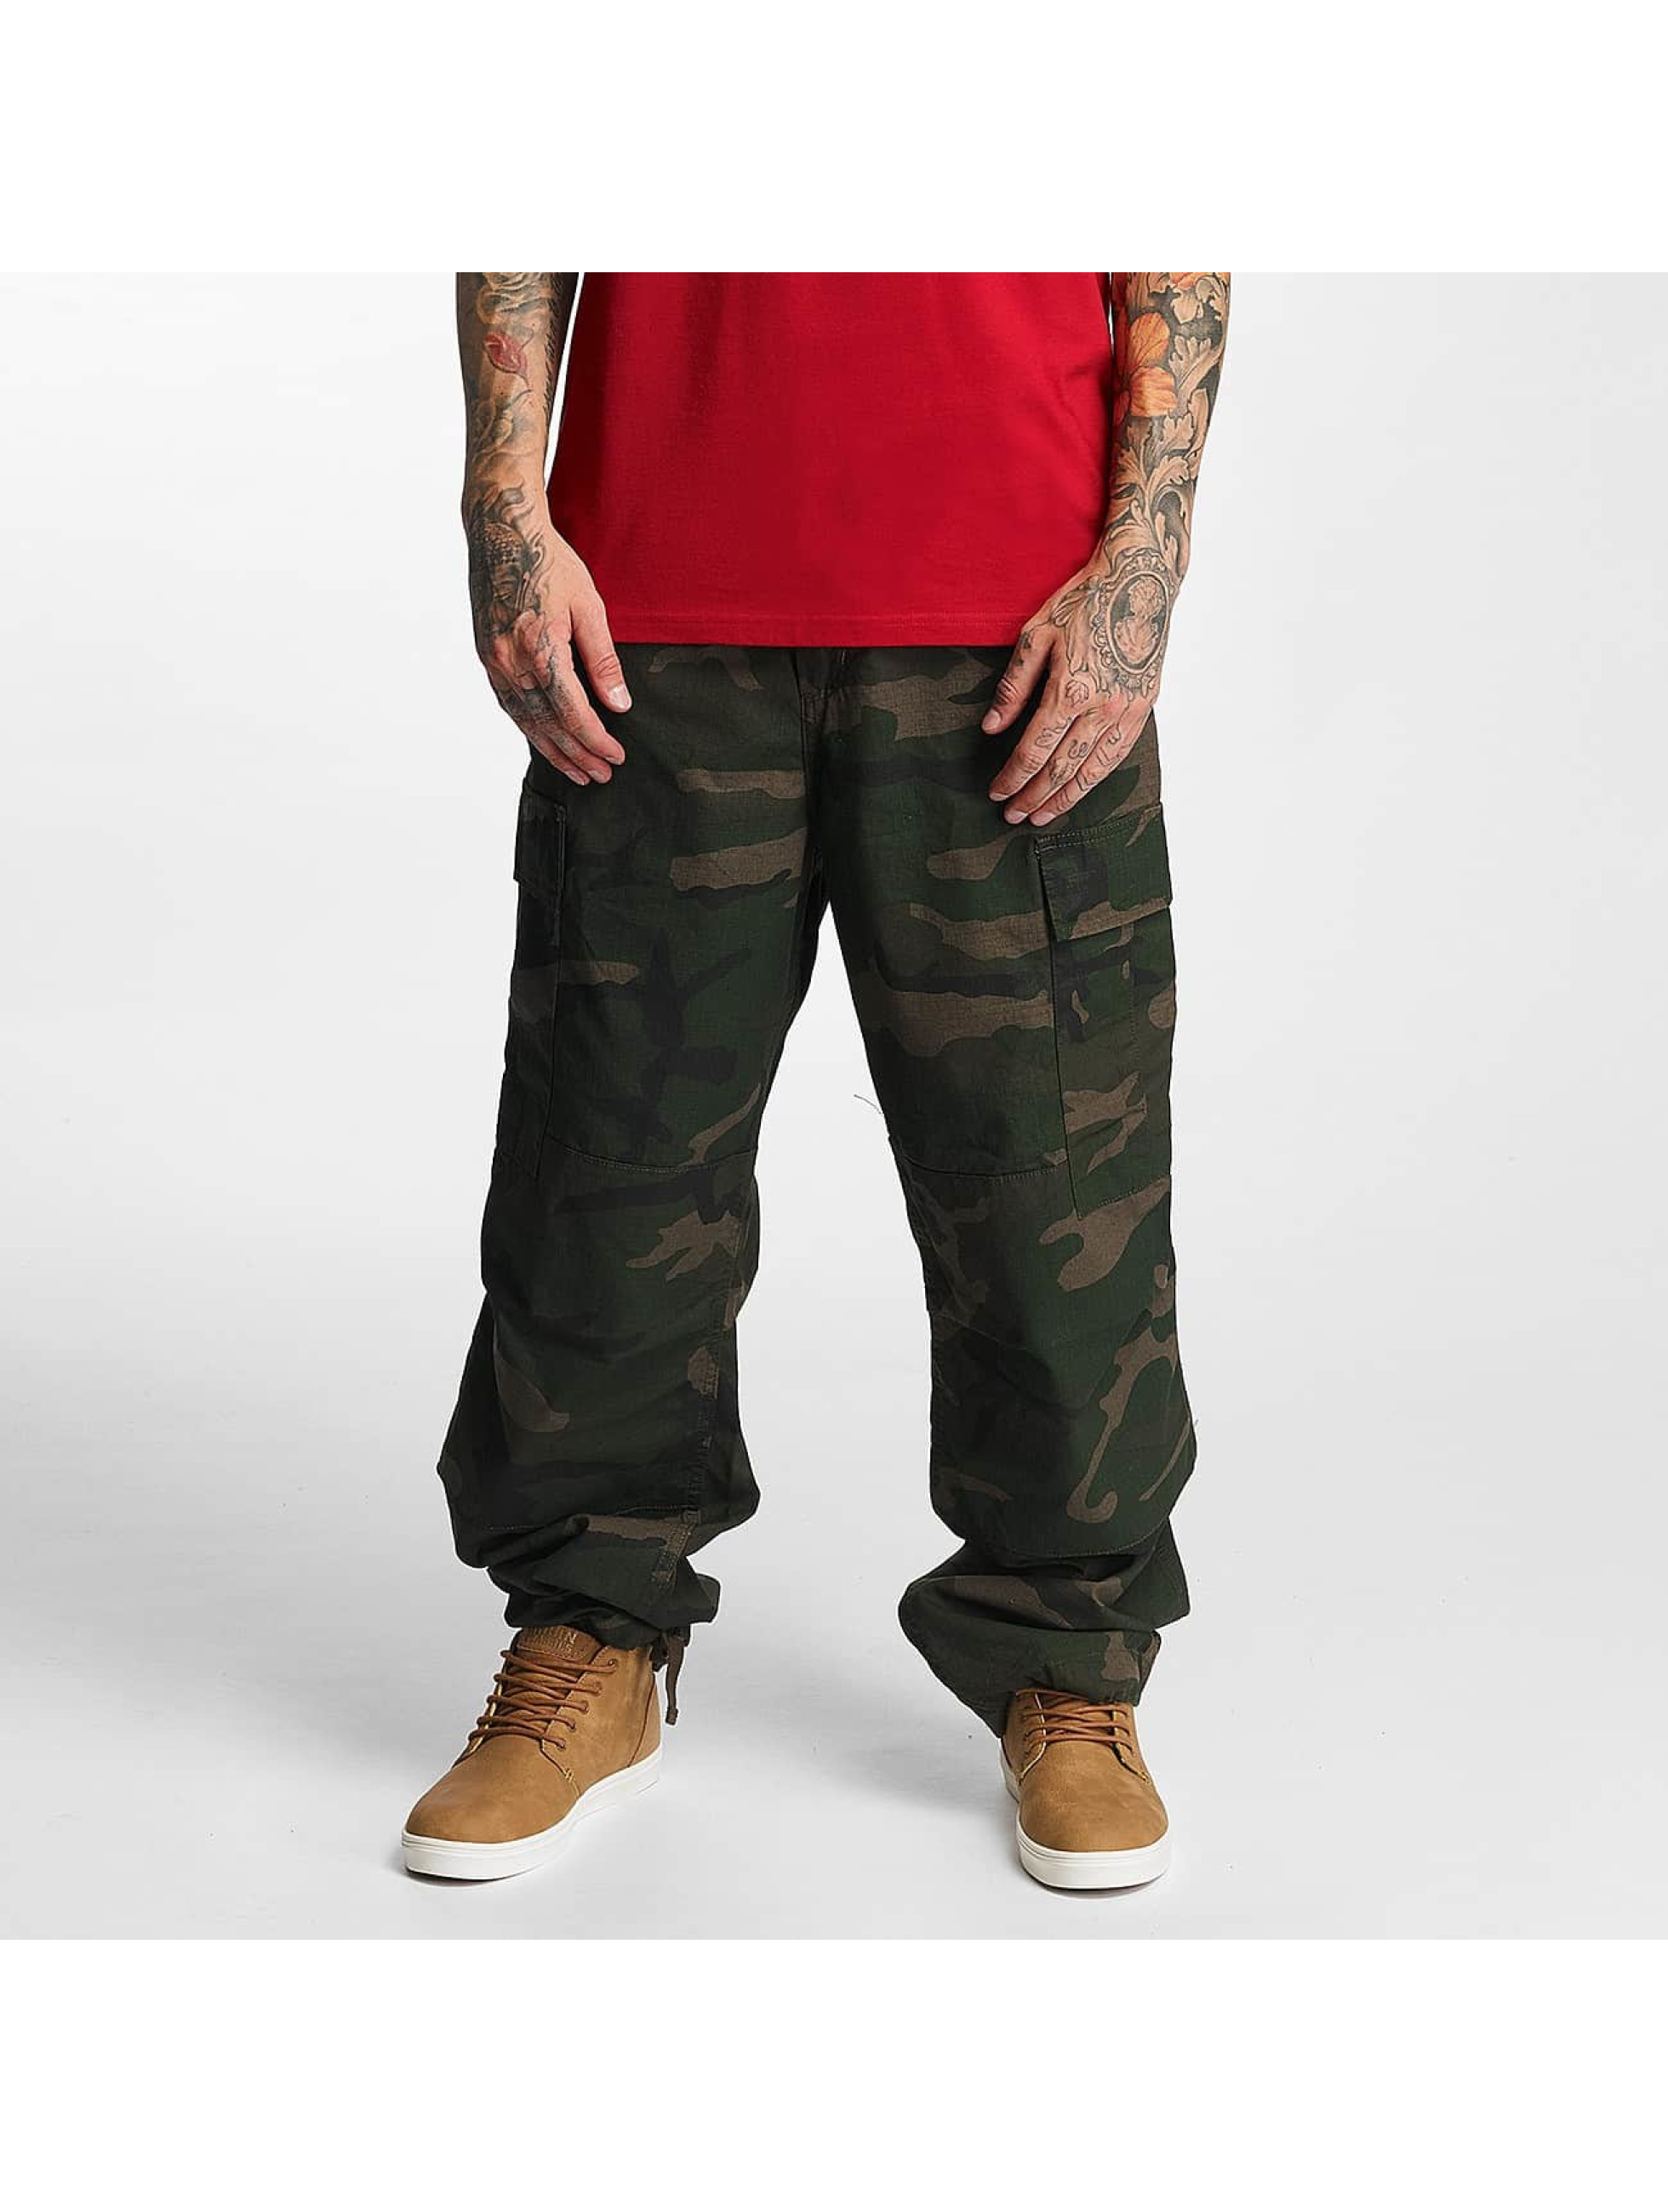 Carhartt WIP Spodnie Chino/Cargo Columbia Relaxed Fit moro